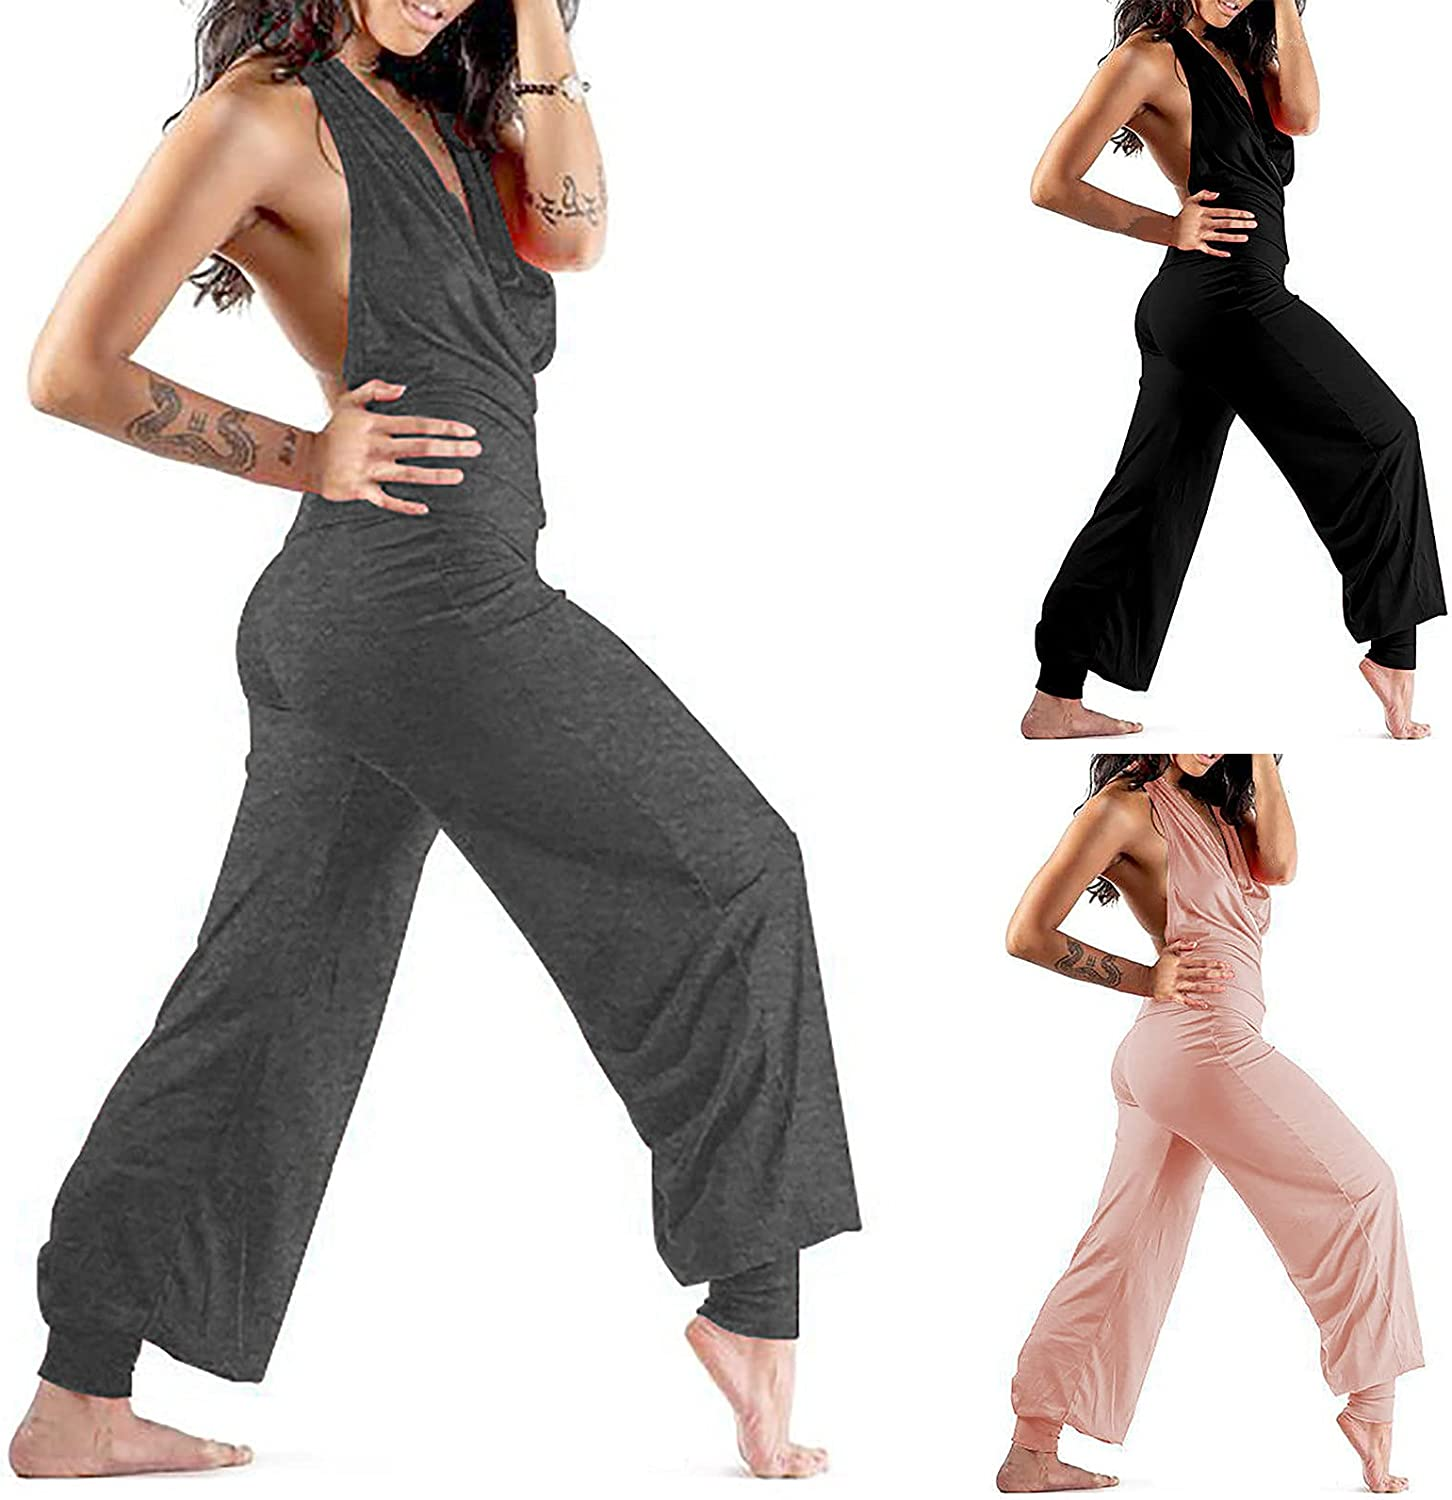 Womens Sexy V Neck Halter Backless Rompers Casual Summer Baggy Yoga Jumpsuits Fshion Wide Leg Long Playsuit